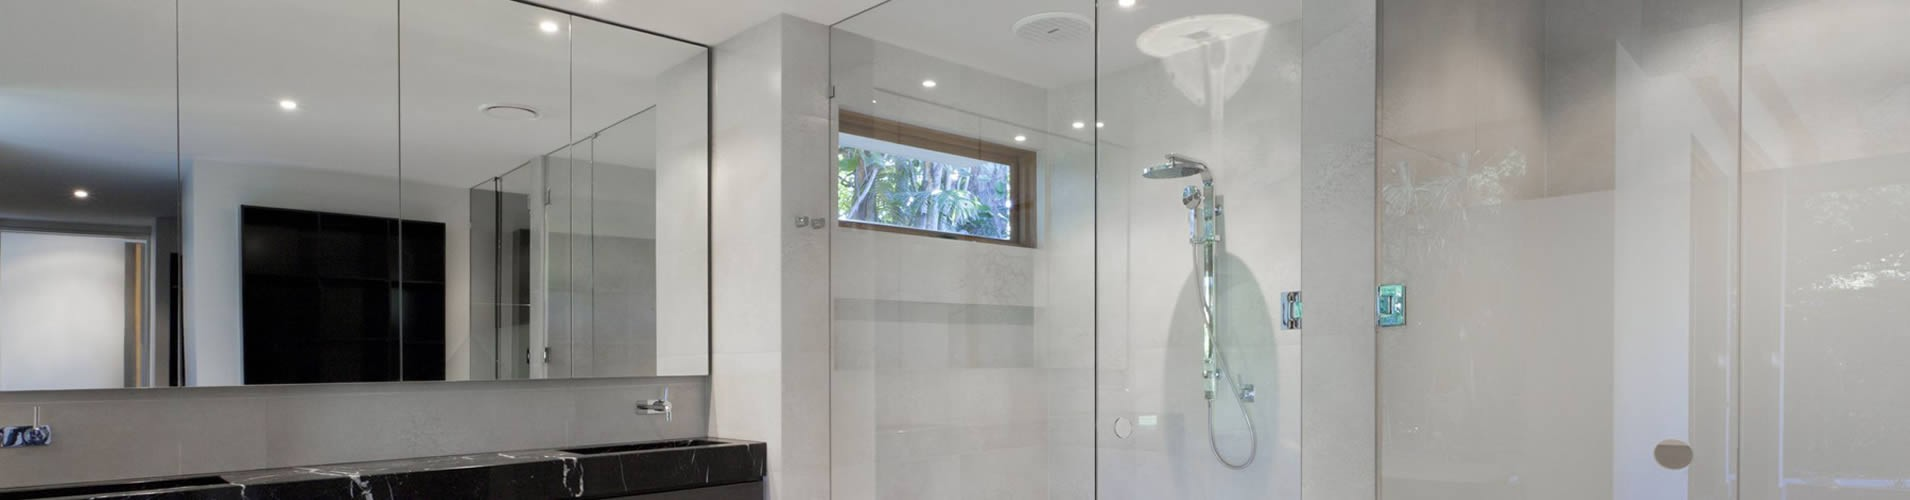 Frameless Glass Shower Doors - Atlanta, Georgia